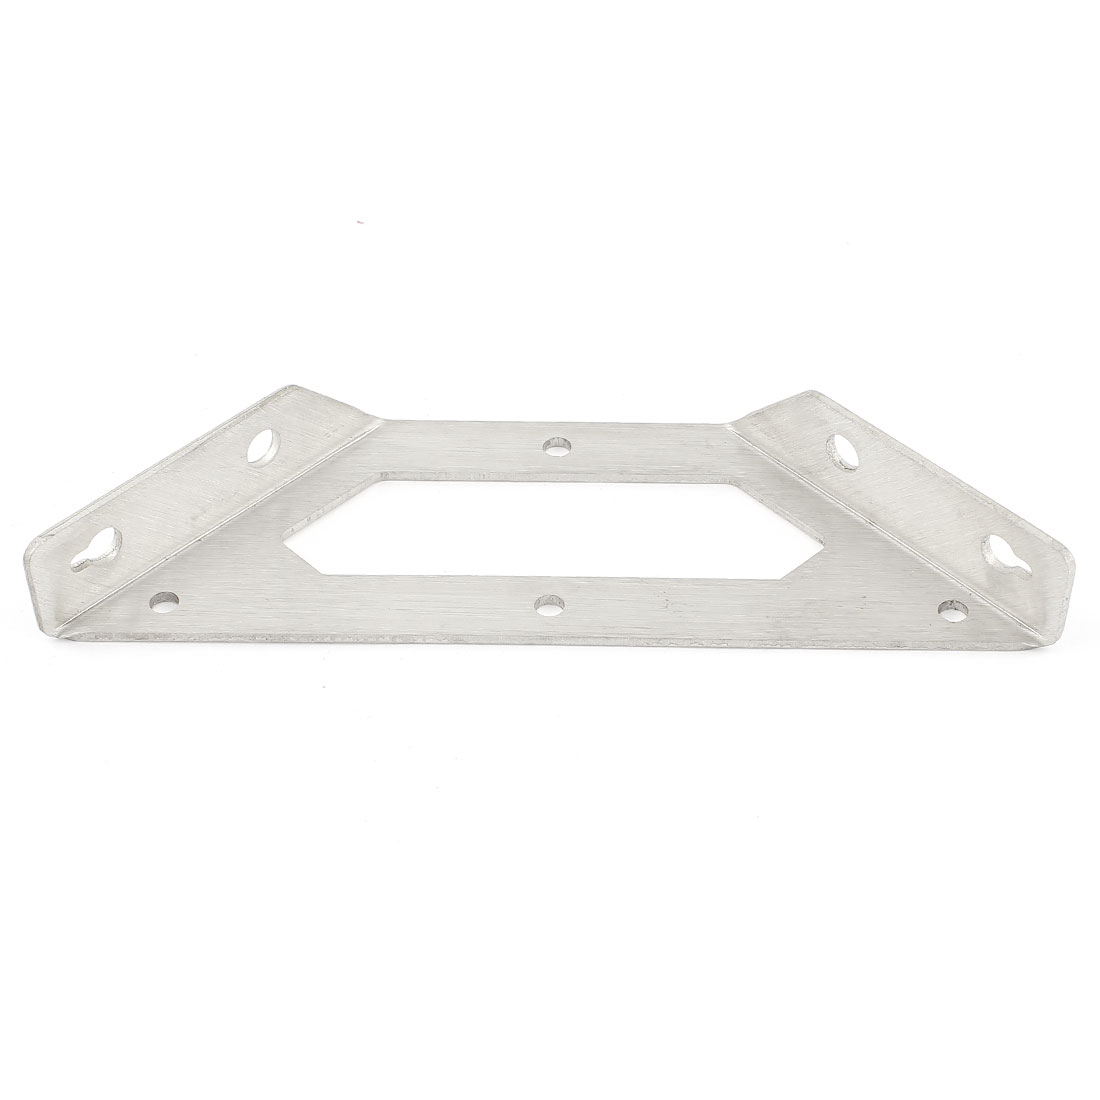 "5.7"" Long Silver Tone Stainless Steel Solid Support Shelf Bracket"